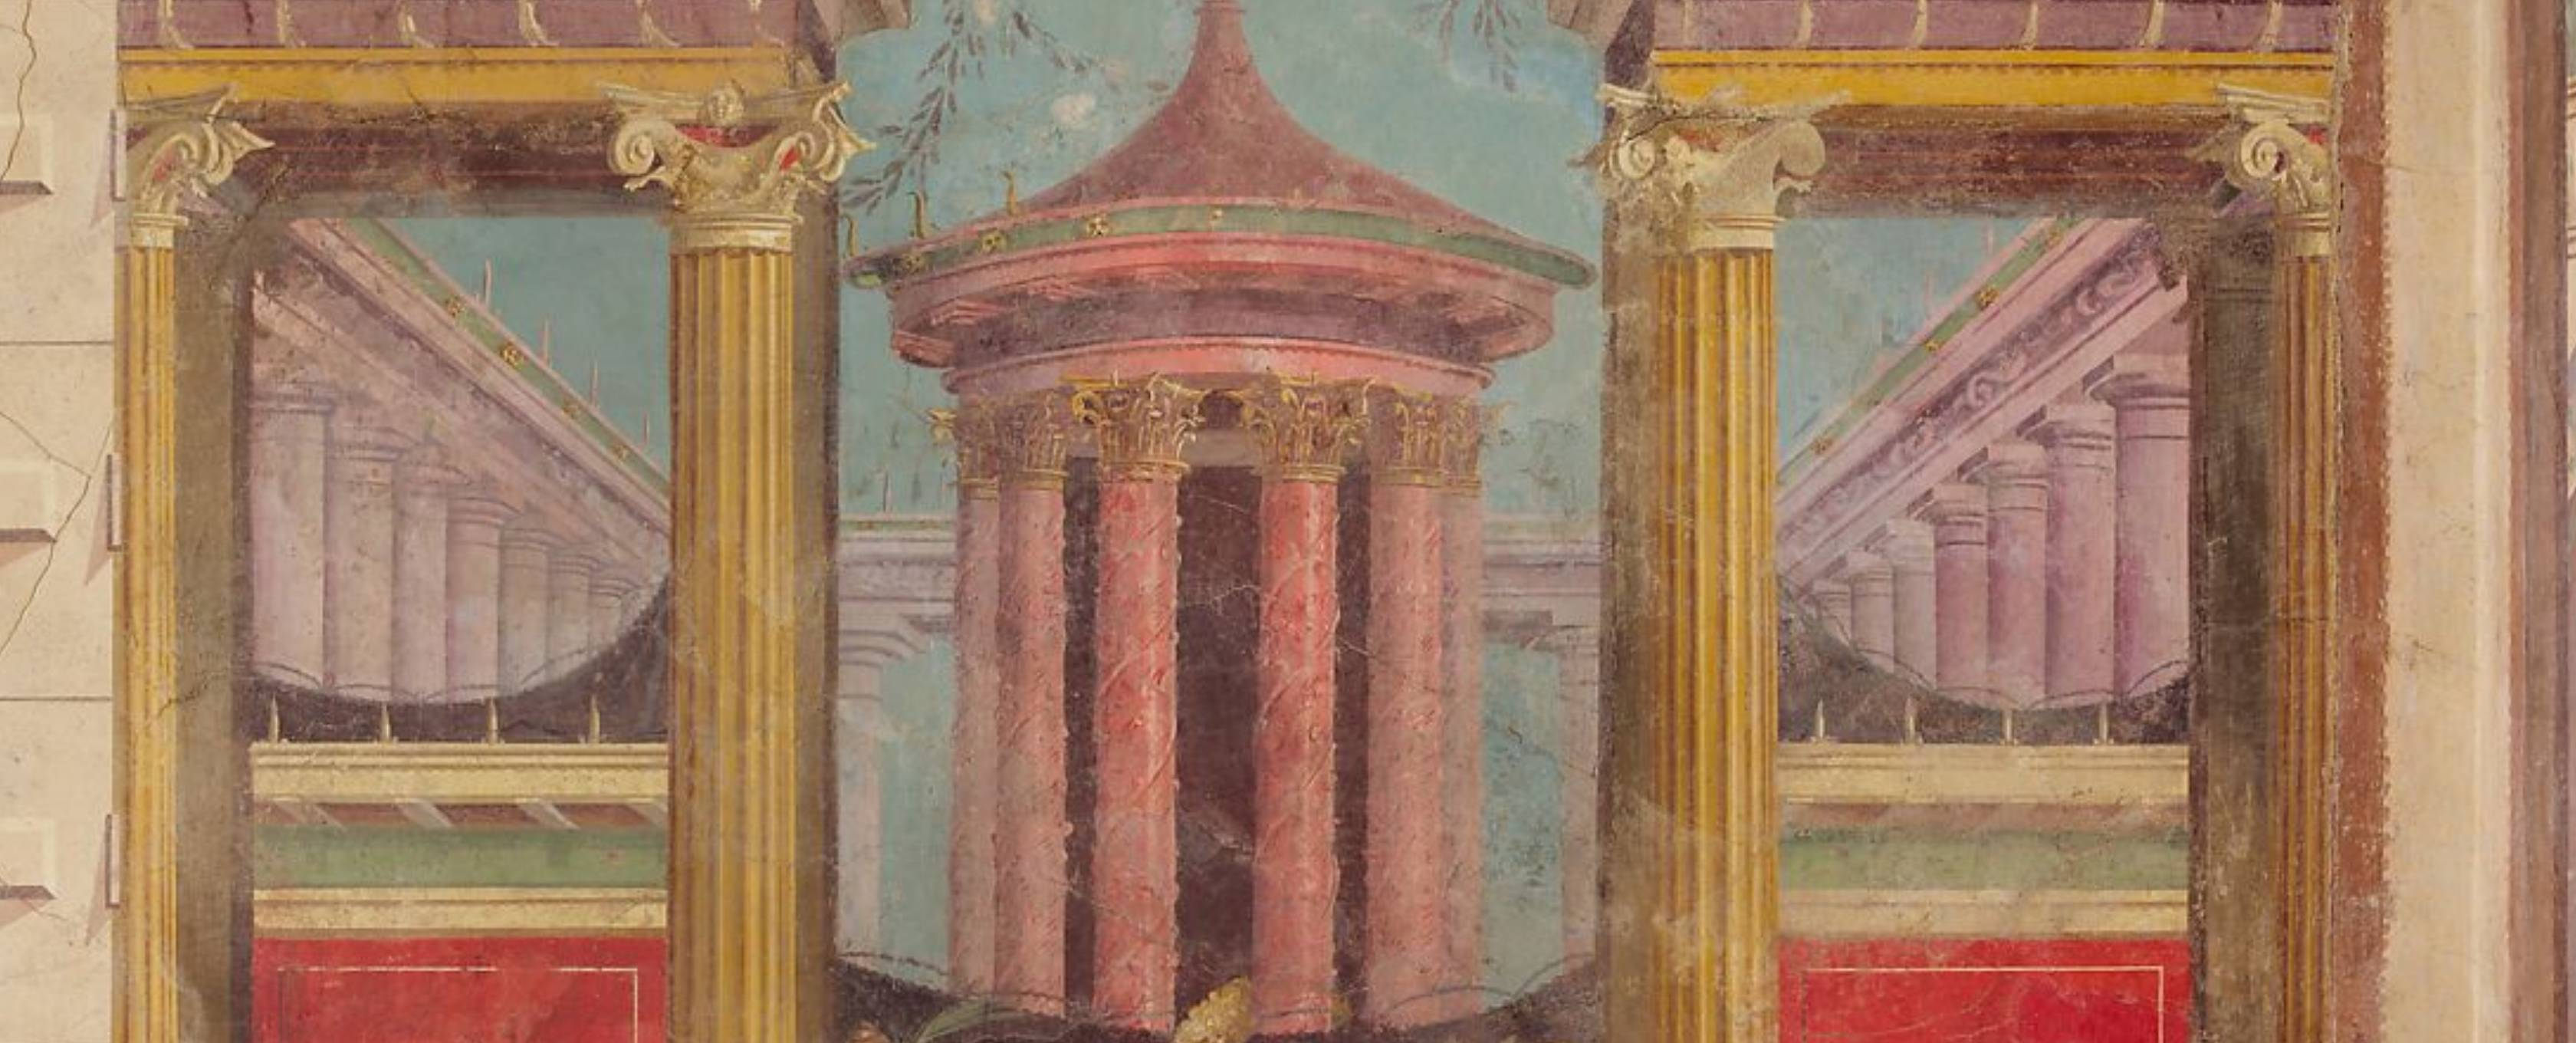 Detail of the Room M of the Villa of P. Fannius Synistor at Boscoreale, buried by the eruption of Vesuvius in A.D. 79. The paintings depict enclosed courtyards in which we glimpse the tops of statuary, rotundas, and pylons as well as vegetation. These precincts alternate with townscapes combining colonnaded buildings and projecting terraces.